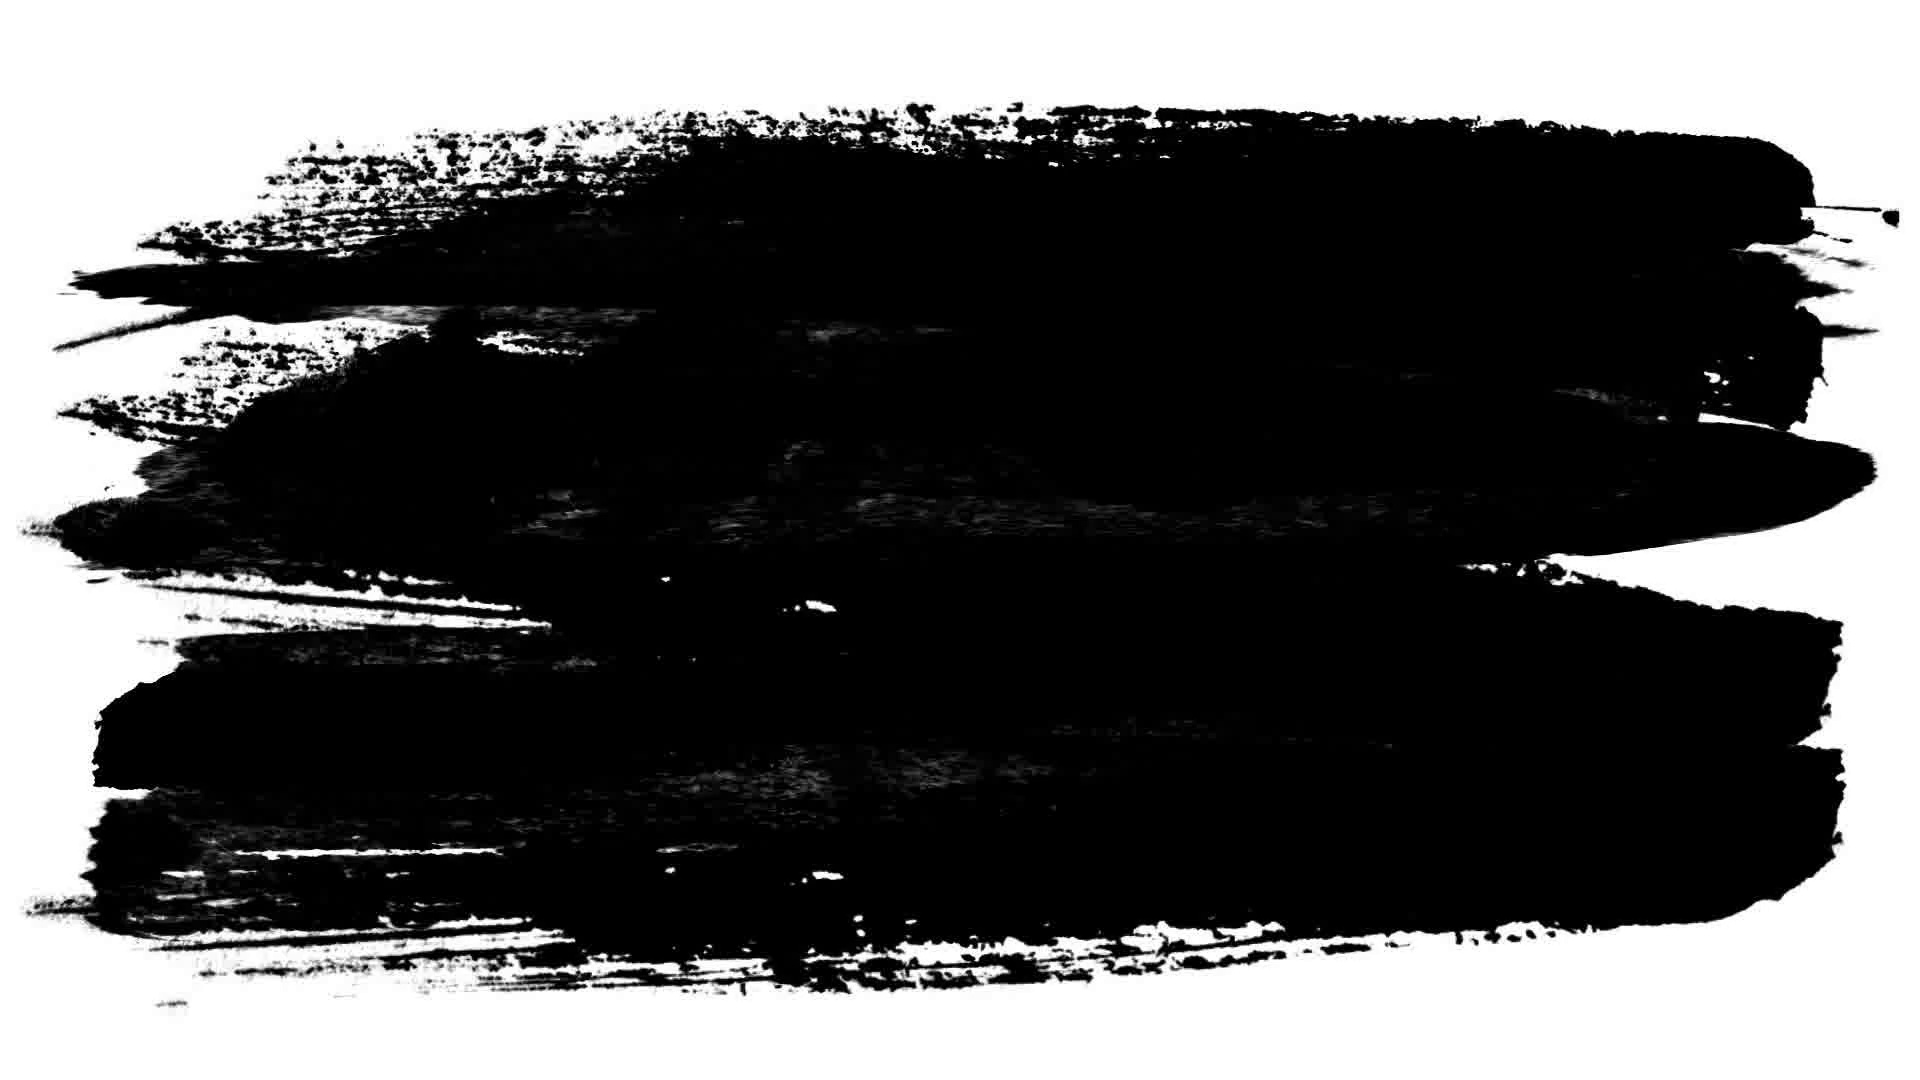 Https Img Pngio Com Paint Stroke Png Png Collections At Sccprecat Paint Swipe Png 1920 1080 Png Paint Strokes Brush Stroke Png Painting